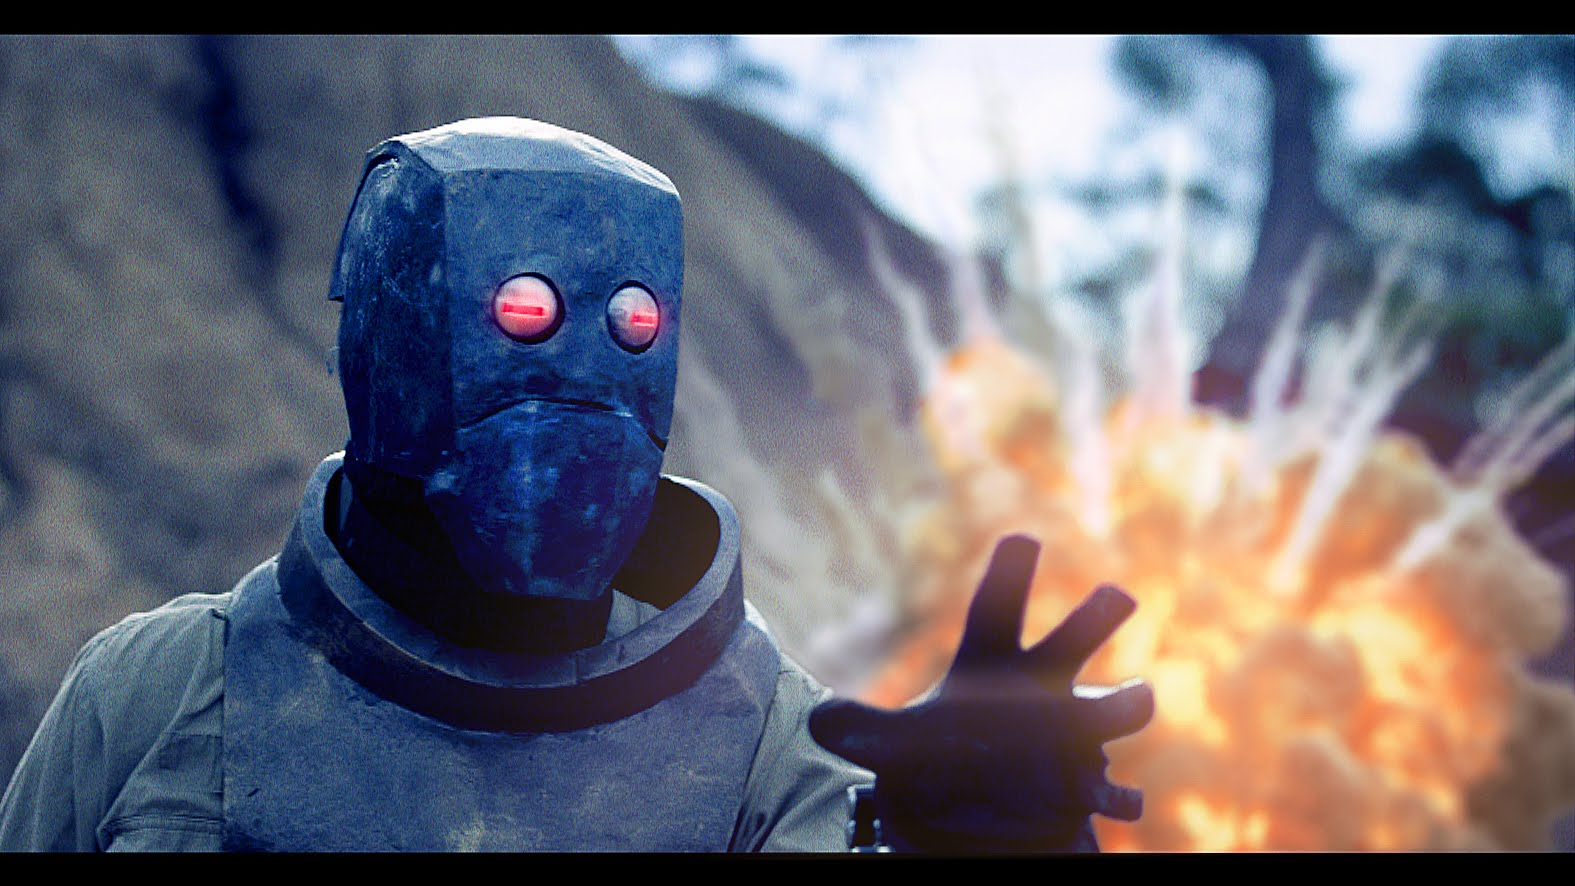 Time Trap, A Sci-Fi Comedy Short Film About a Time-Traveling Alien With a Broken Spaceship